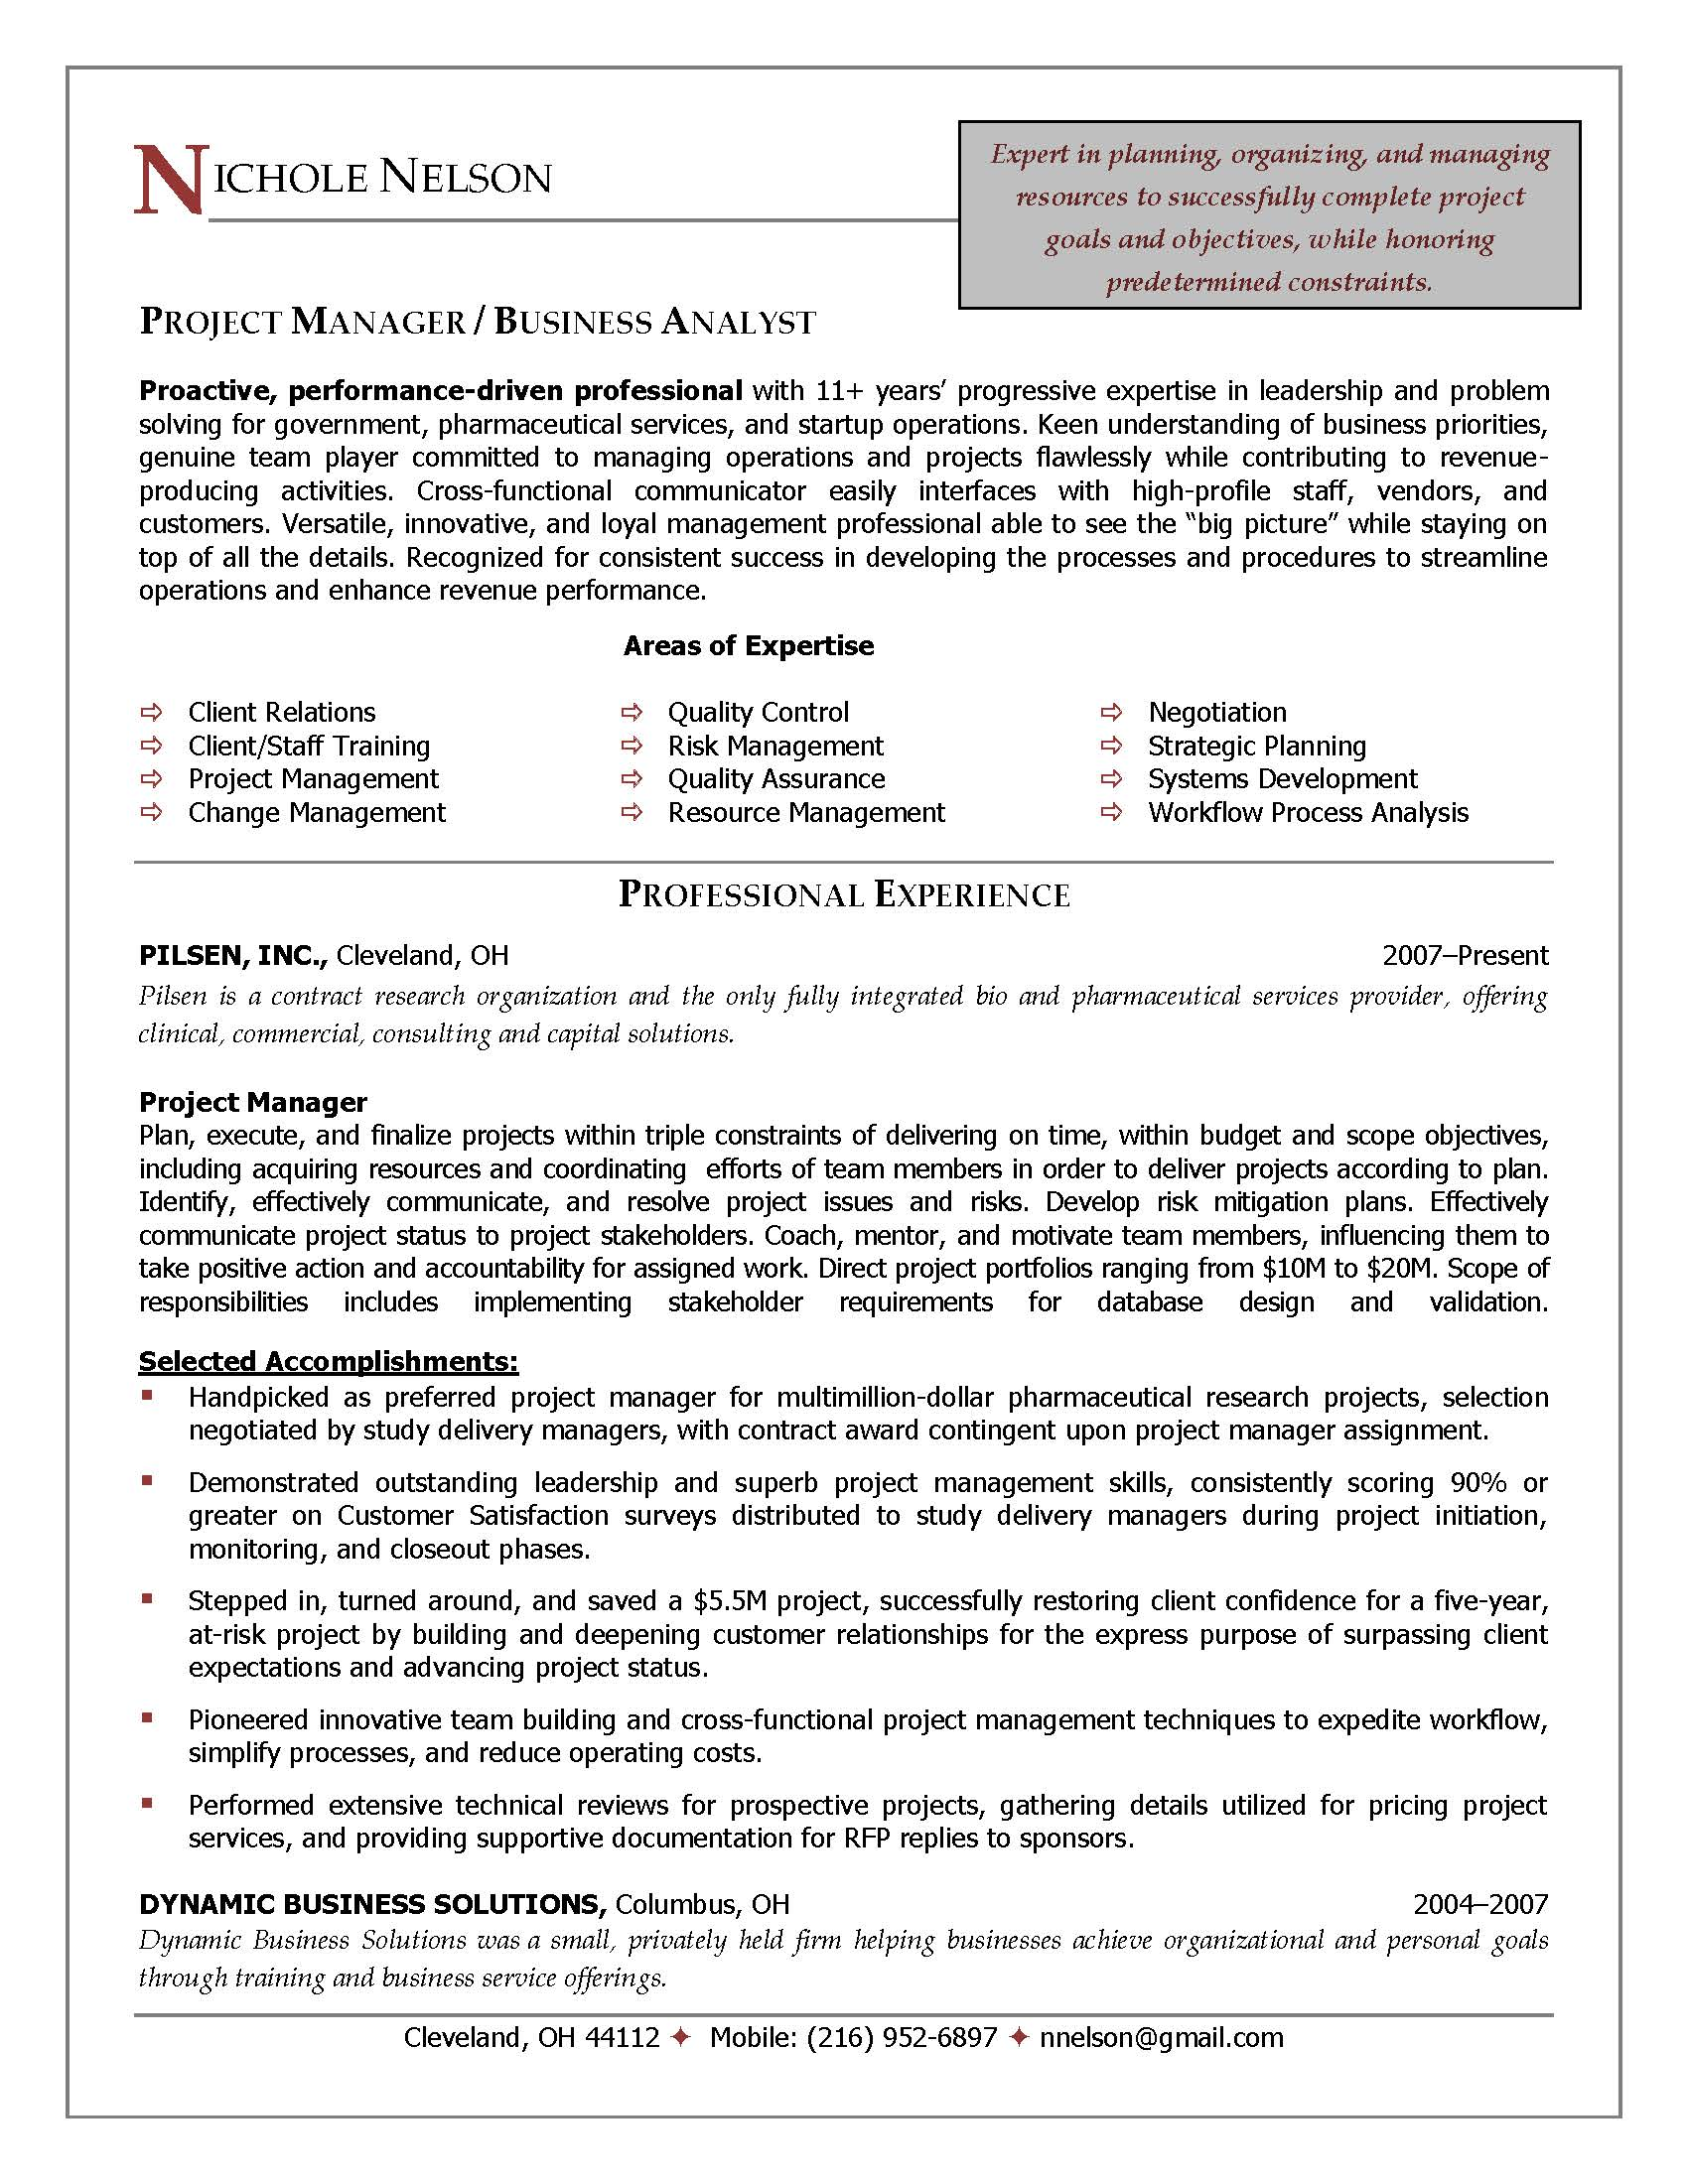 Senior Project Manager Resume Pdf format | Business Document